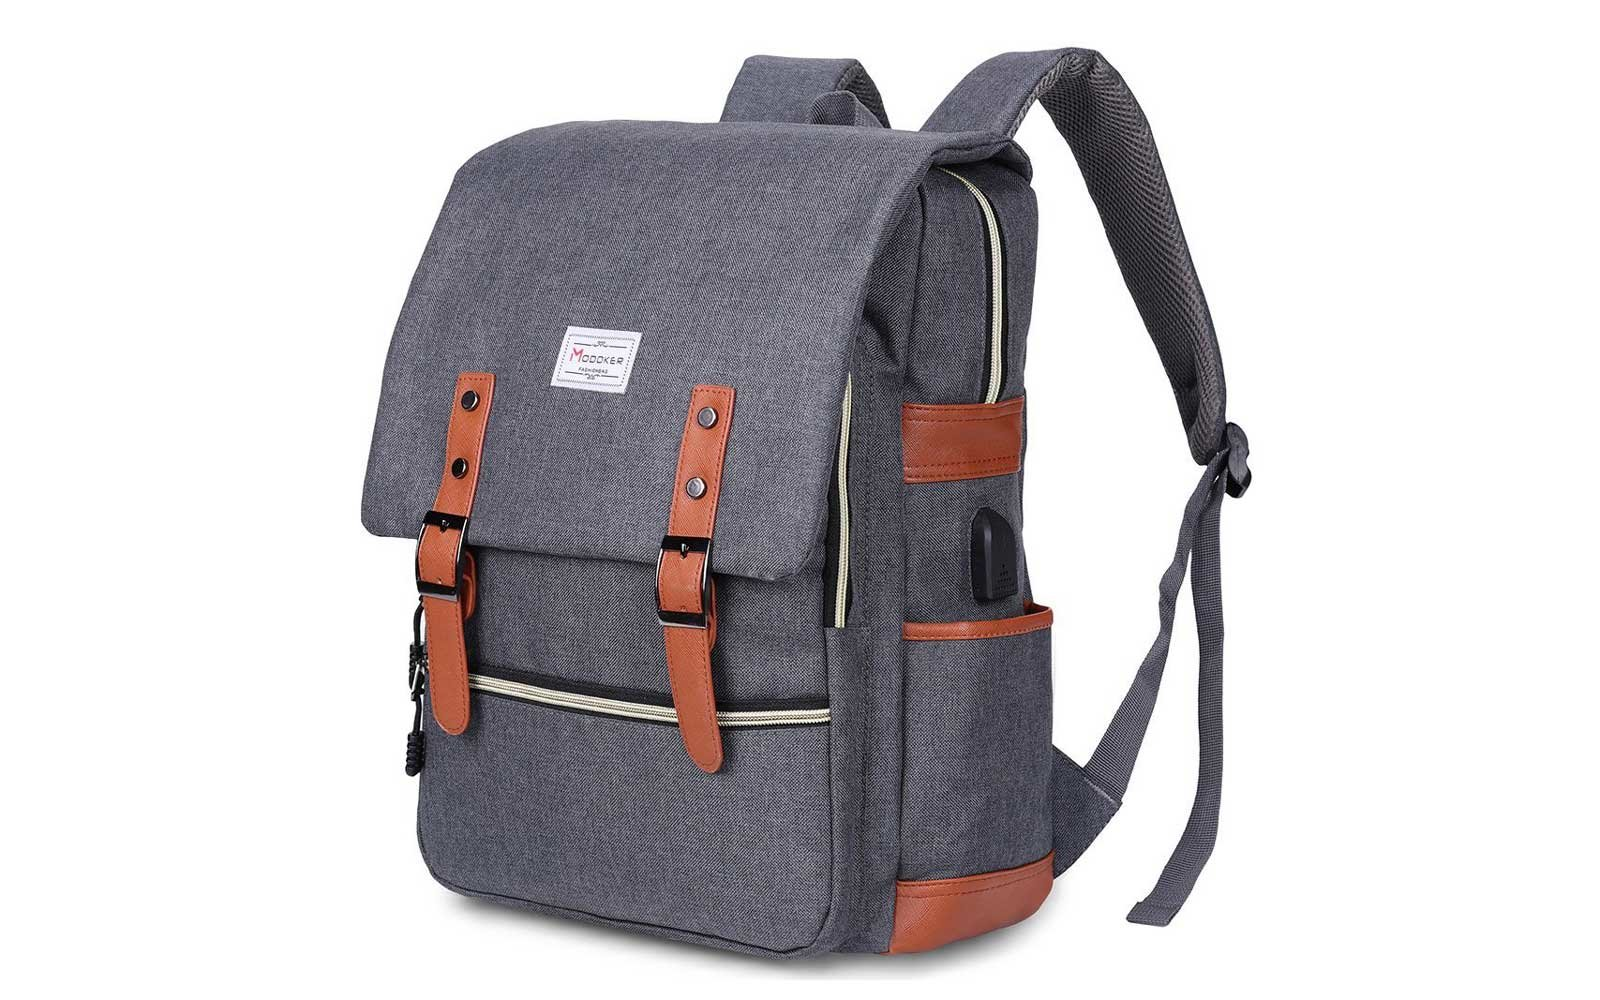 The Most Popular Backpacks on Amazon Right Now